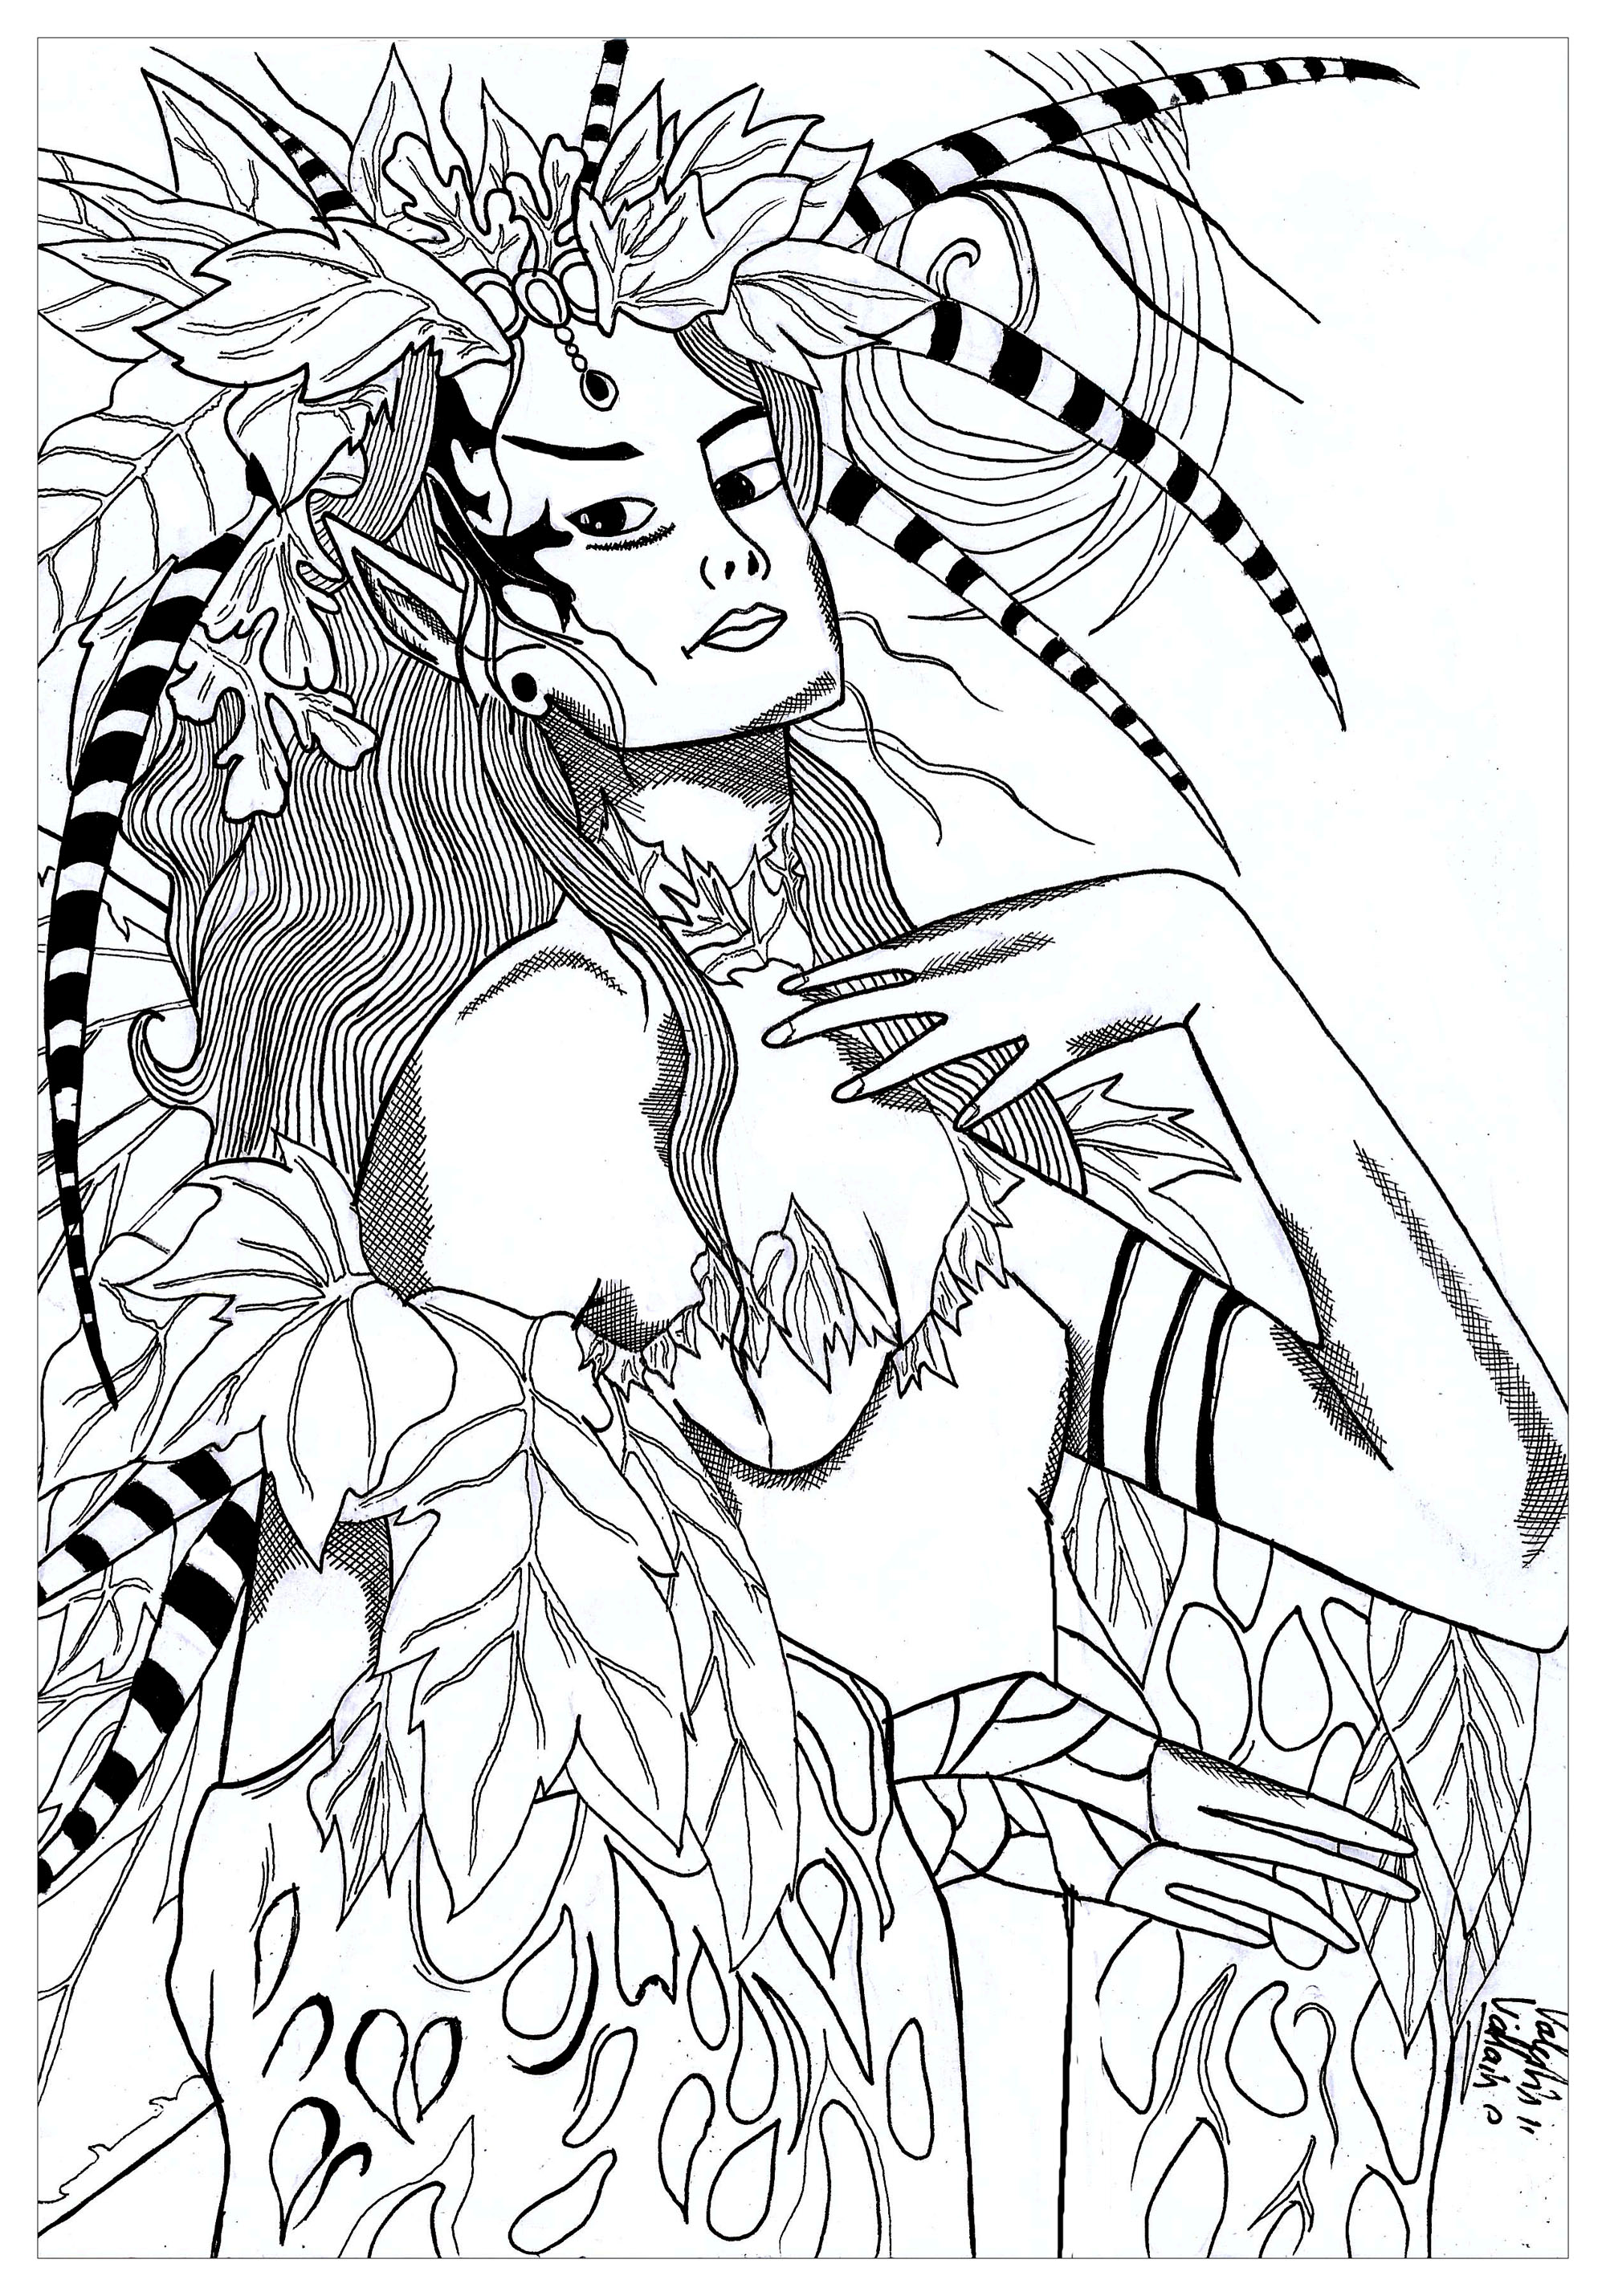 Coloring page of Mother Nature wearing her headdress